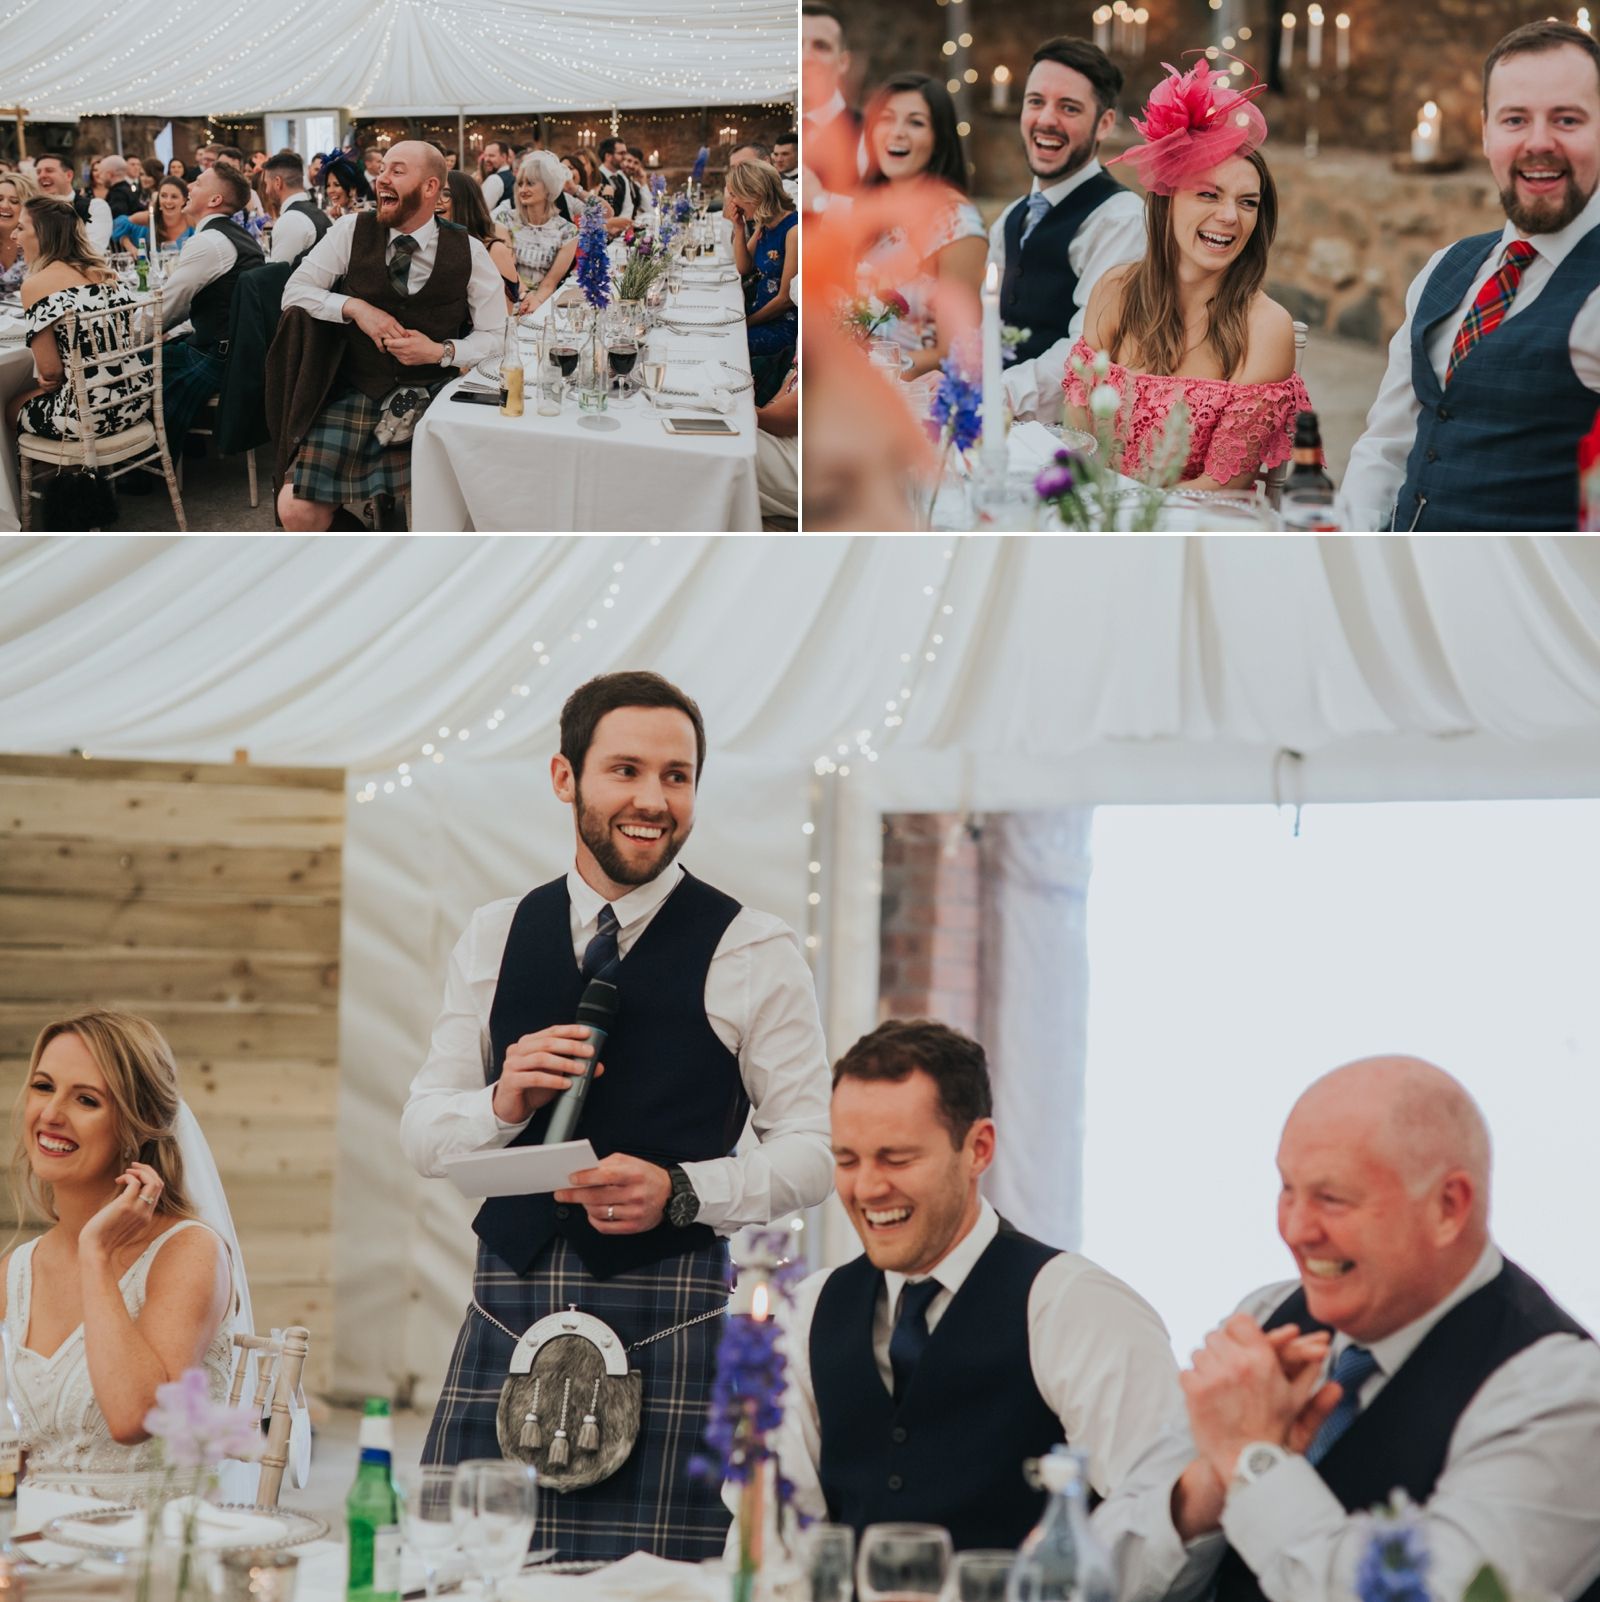 cow-shed-crail-rustic-wedding-gemma-andy-loraine-ross-photographygemma-andy-wedding-0706.jpg